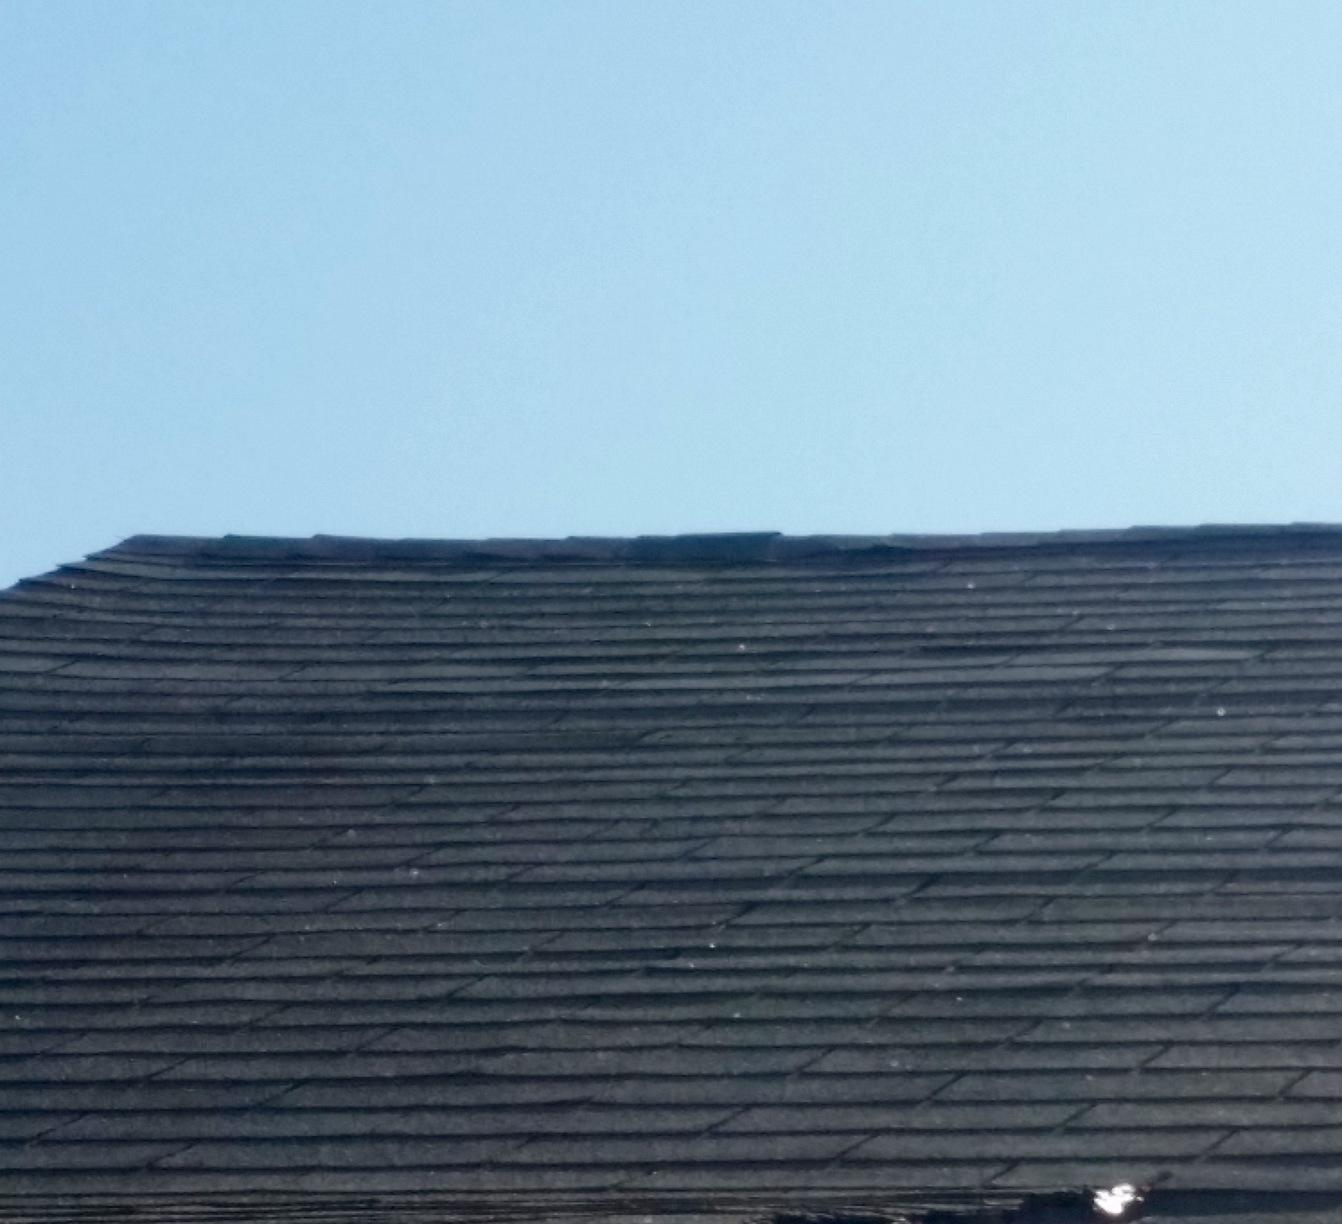 Roof Shingle Repair in Hometown IL - After Photo